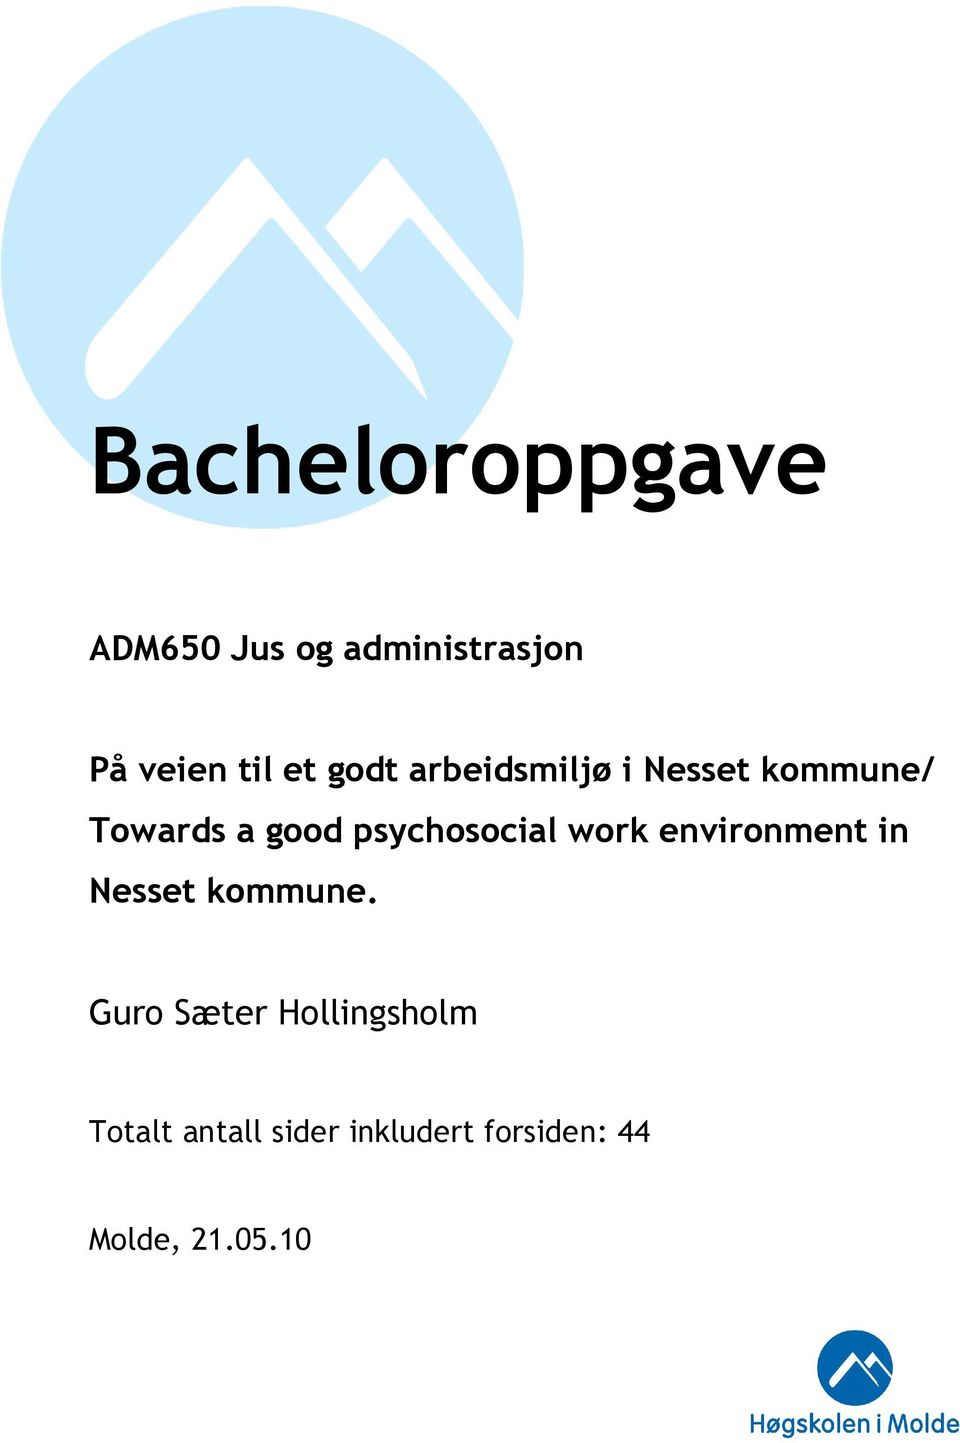 psychosocial work environment in Nesset kommune.